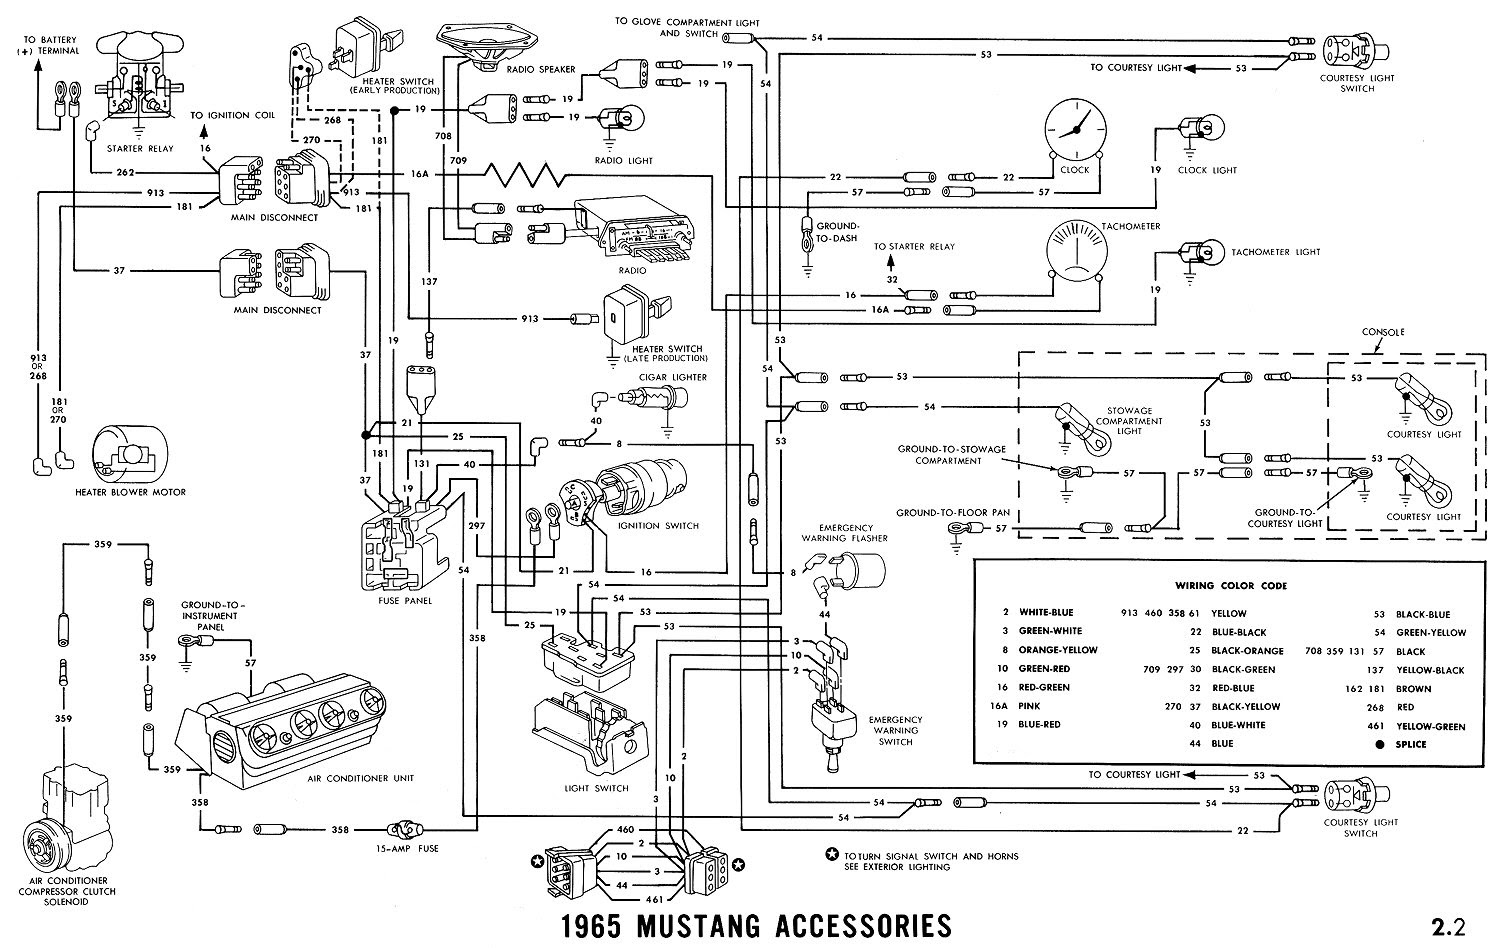 70 Mustang Instrument Cluster Wiring Diagram 2012 Ford Fiesta Fuse Box Bege Wiring Diagram